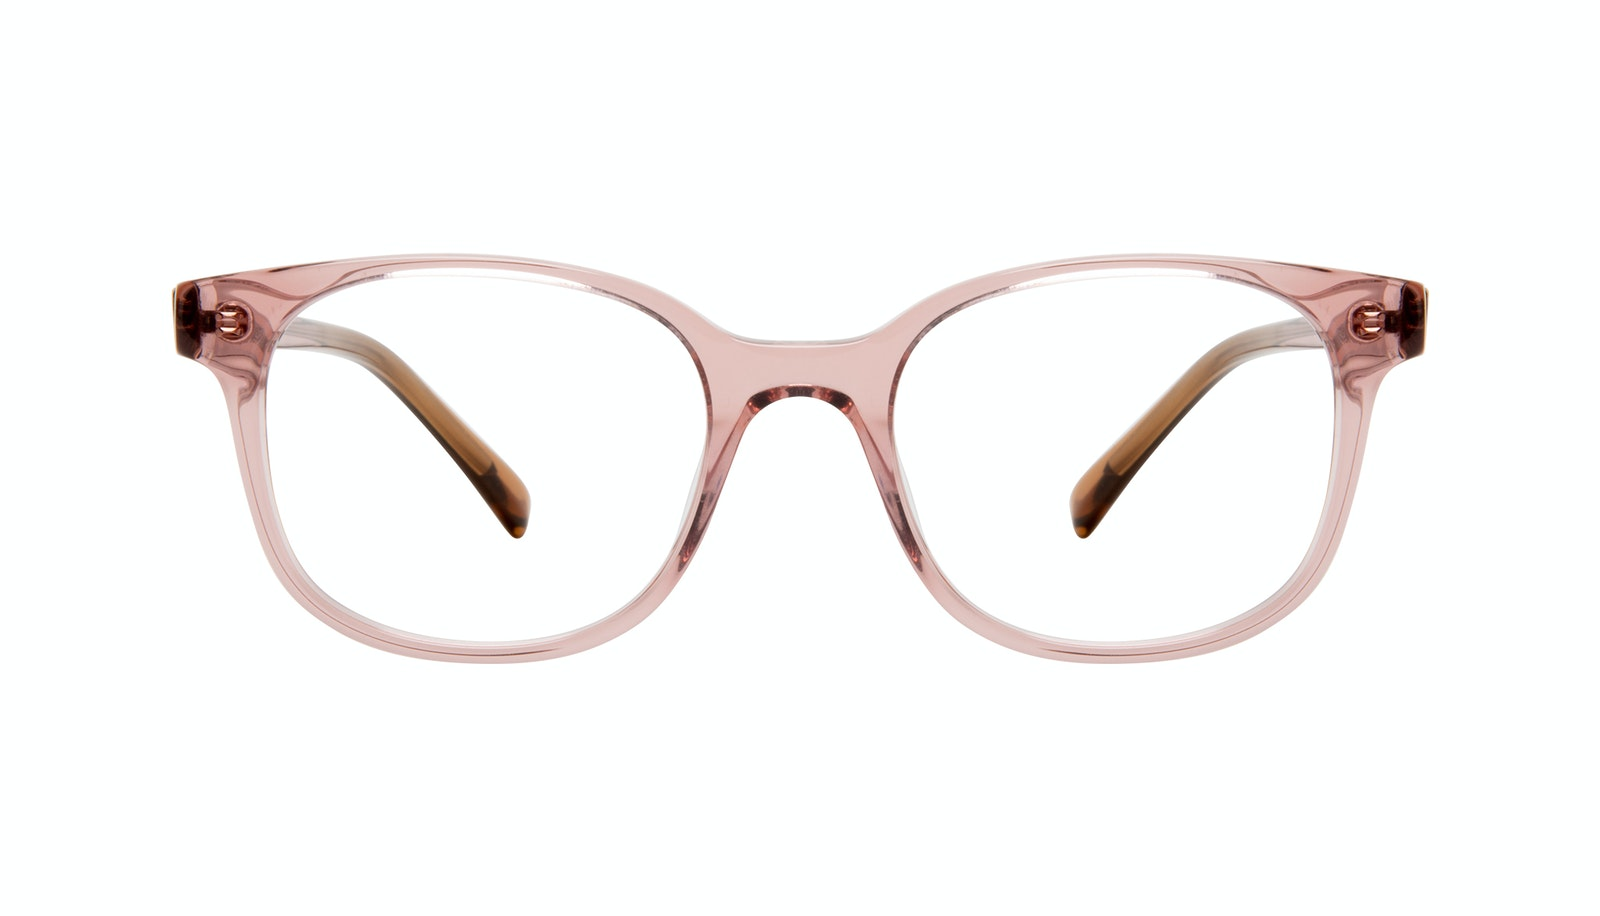 Affordable Fashion Glasses Square Eyeglasses Women Unique Rose